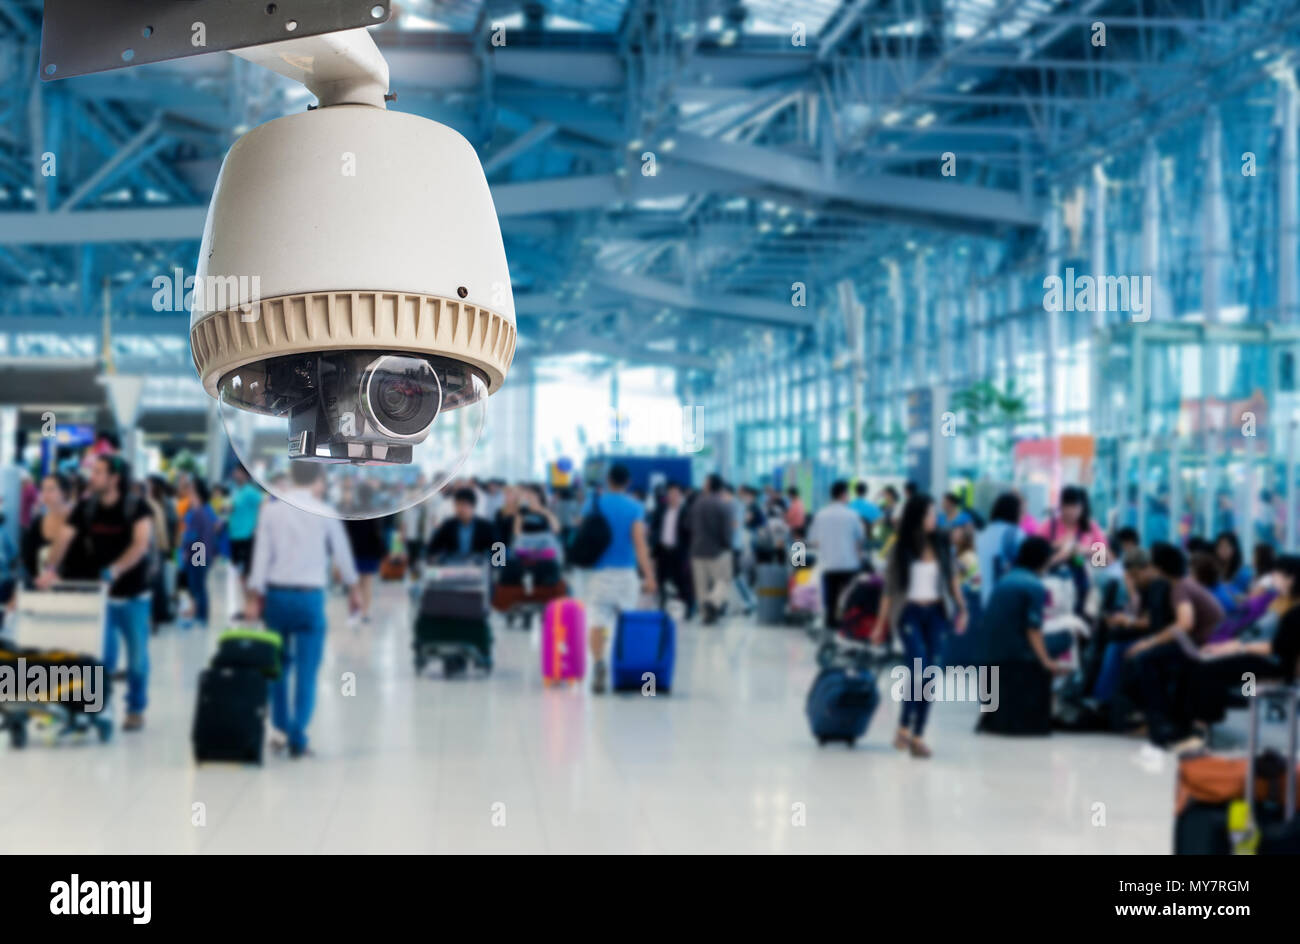 CCTV camera or surveillance operating in air port - Stock Image